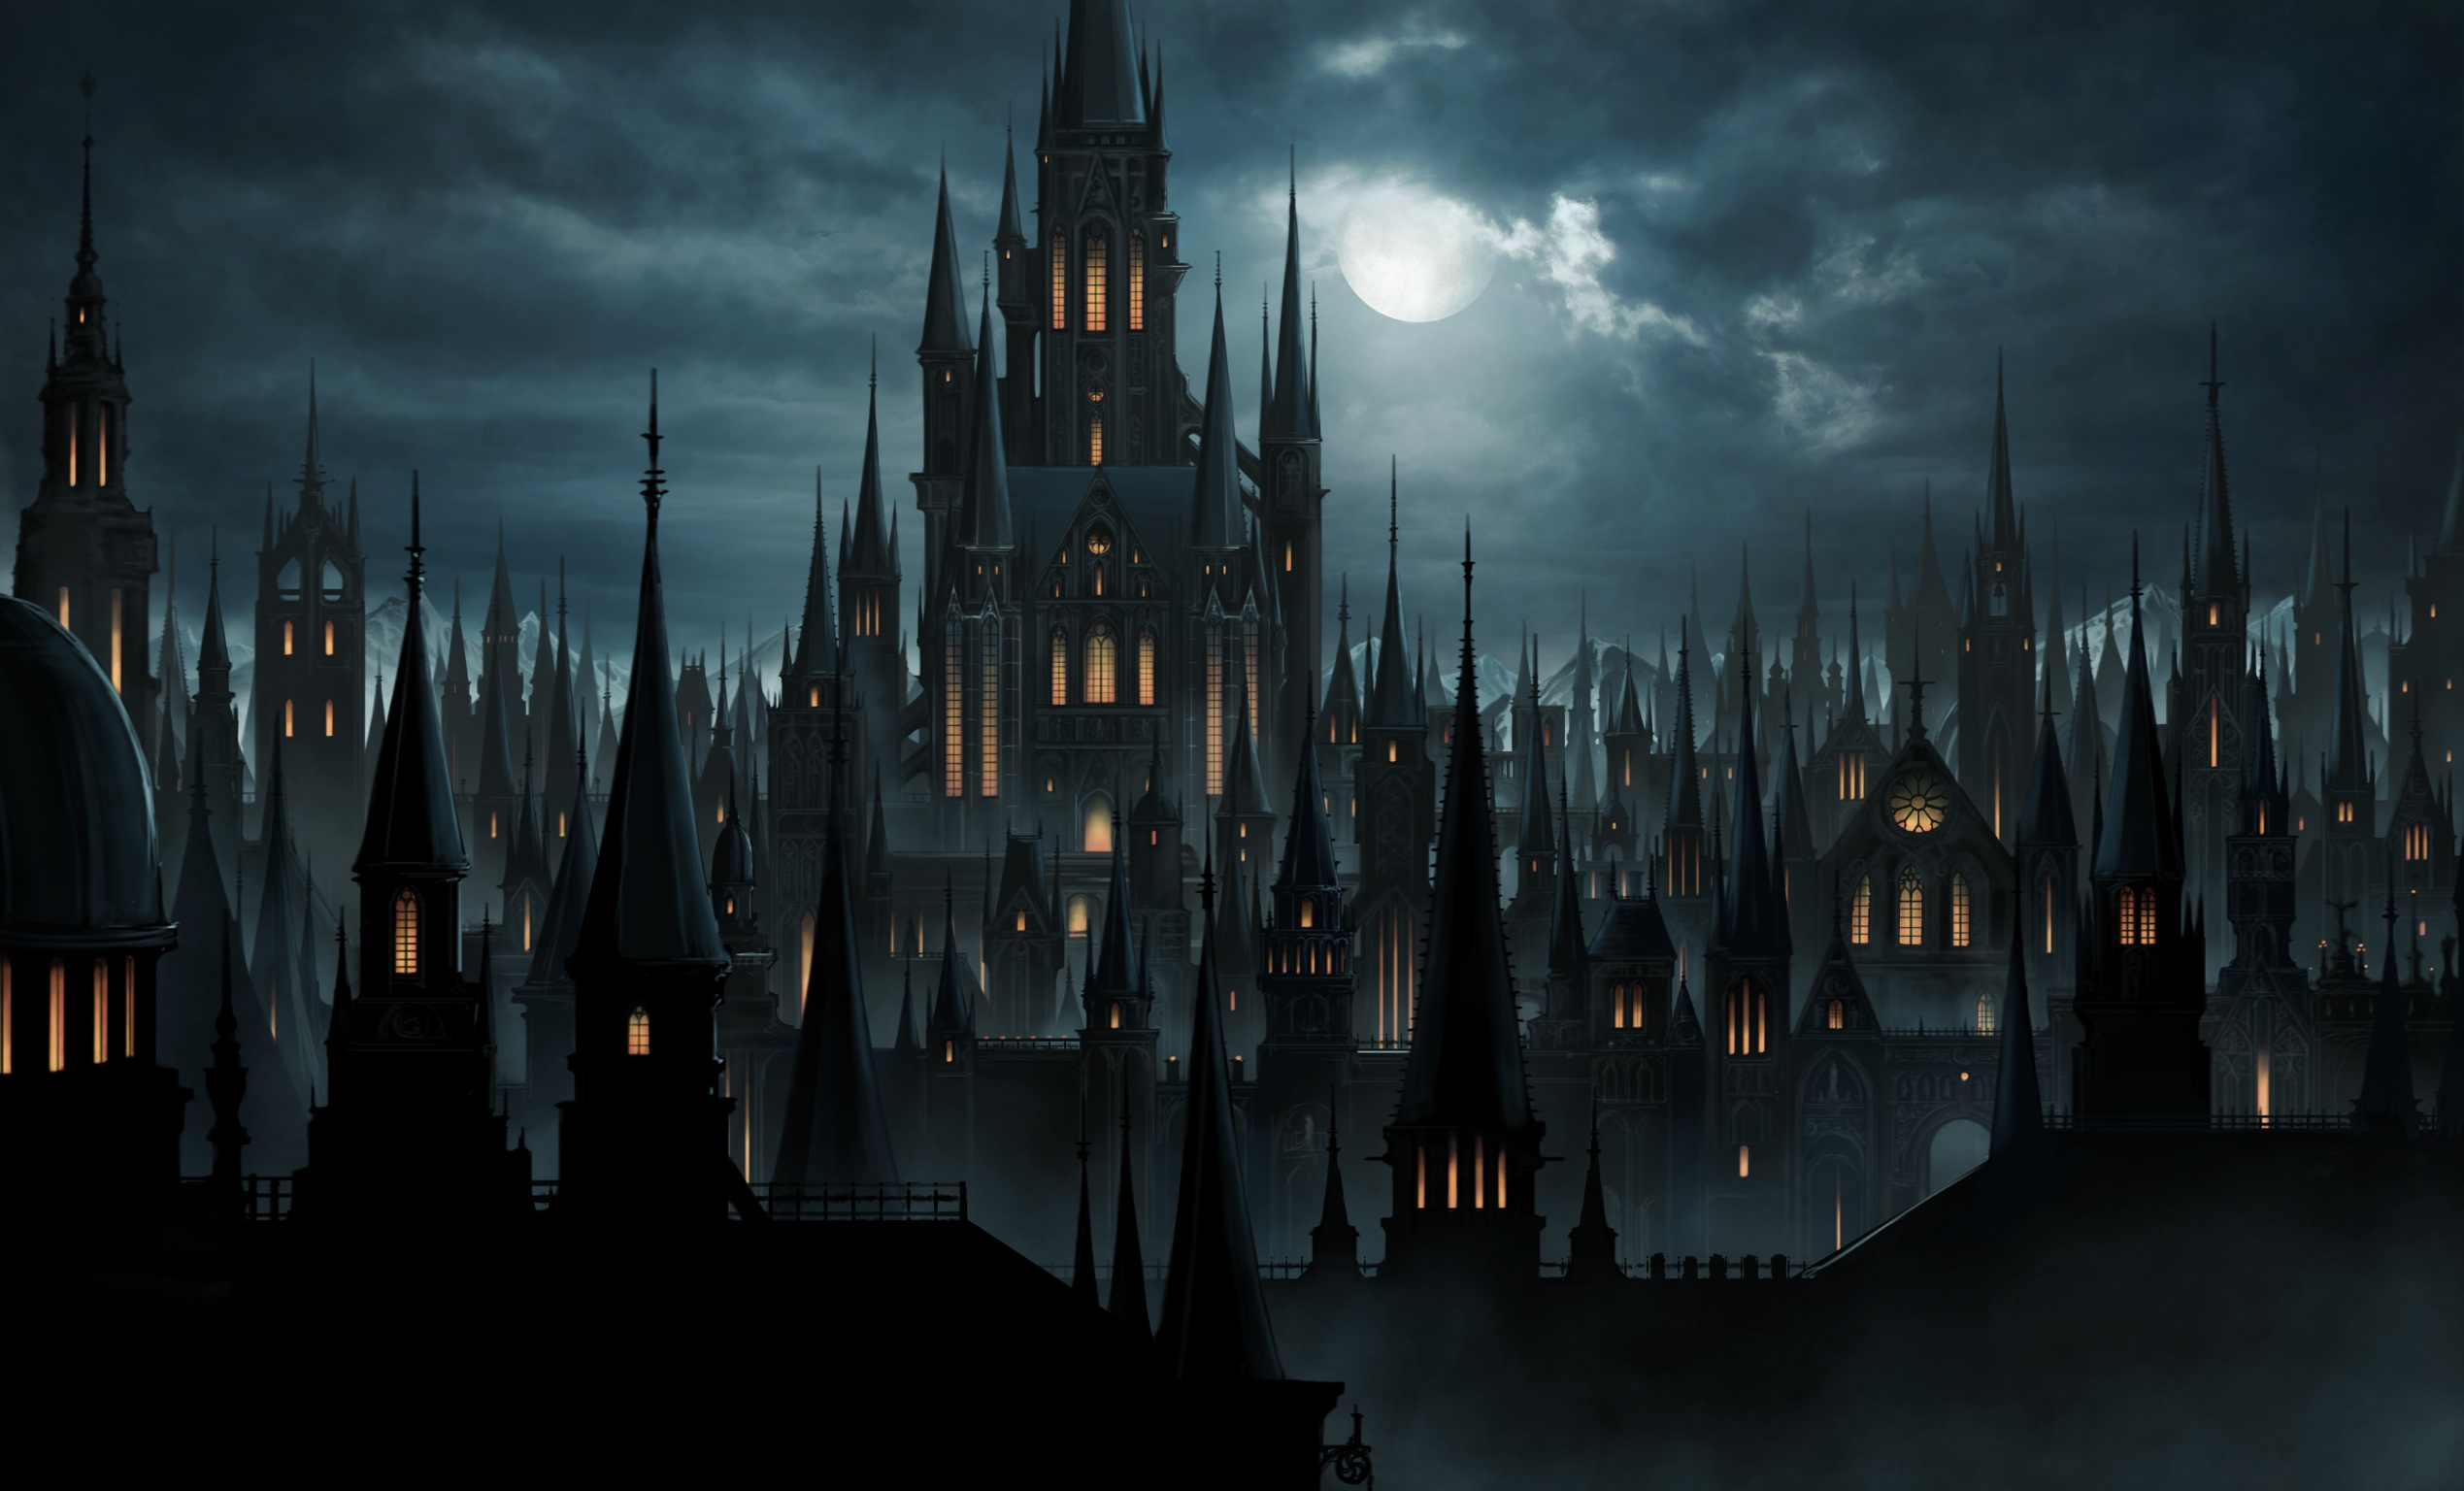 gothic castle 3 by - photo #33